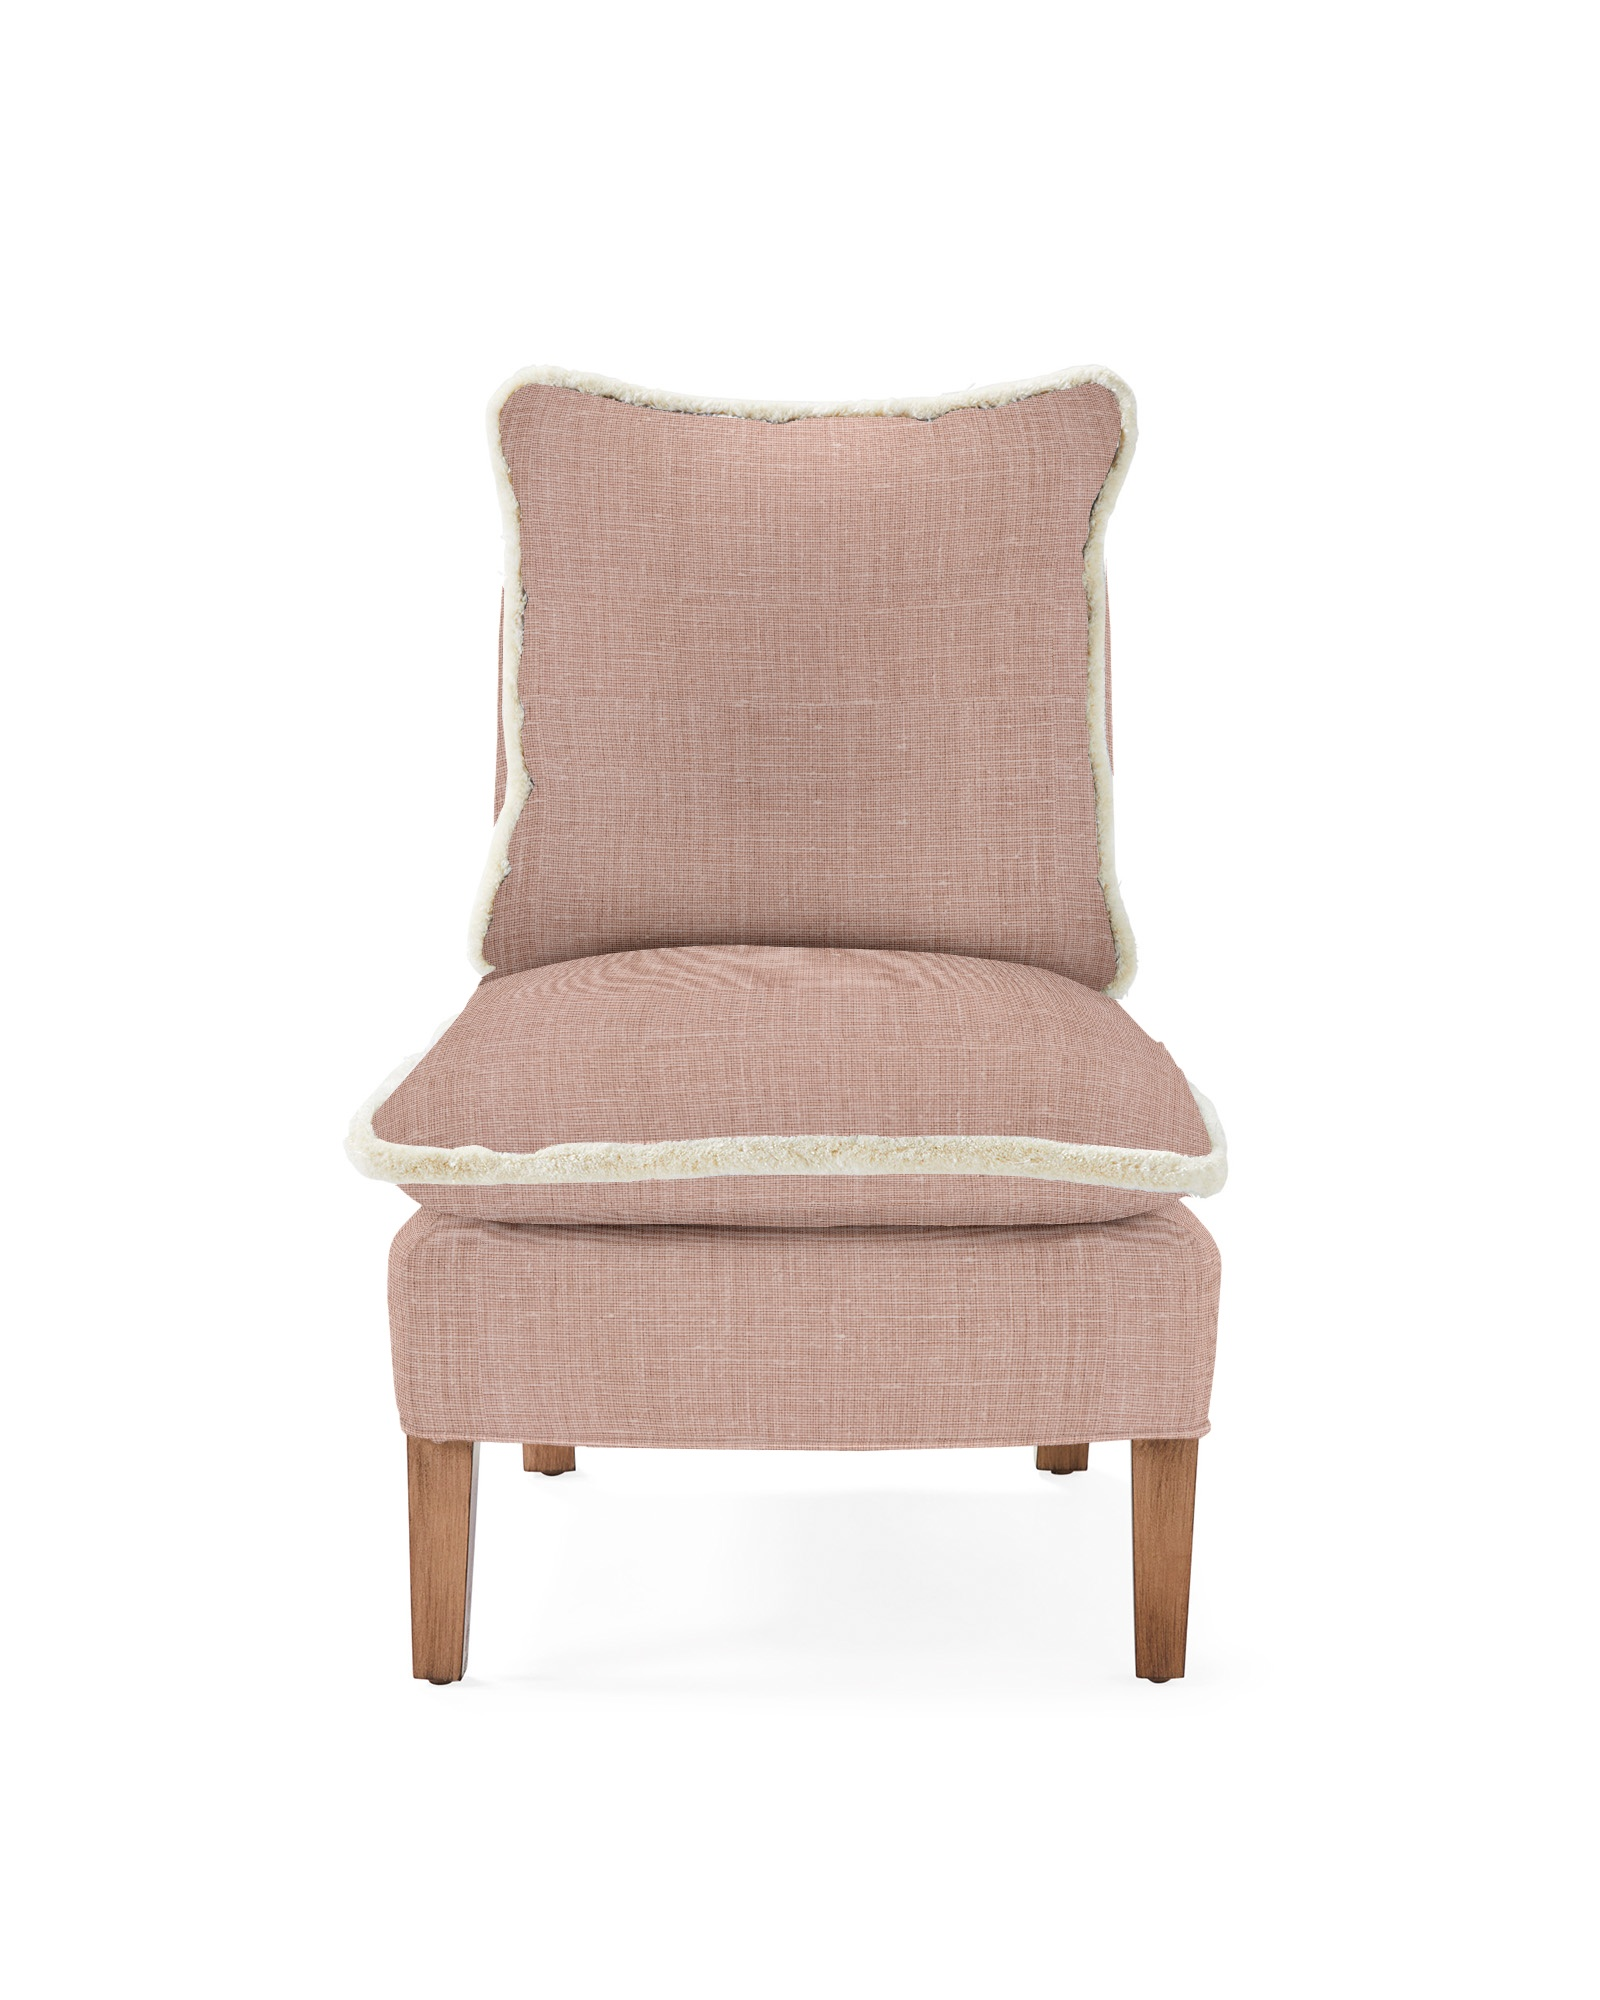 Watson Slipper Chair with Fringe, Washed Linen Blush